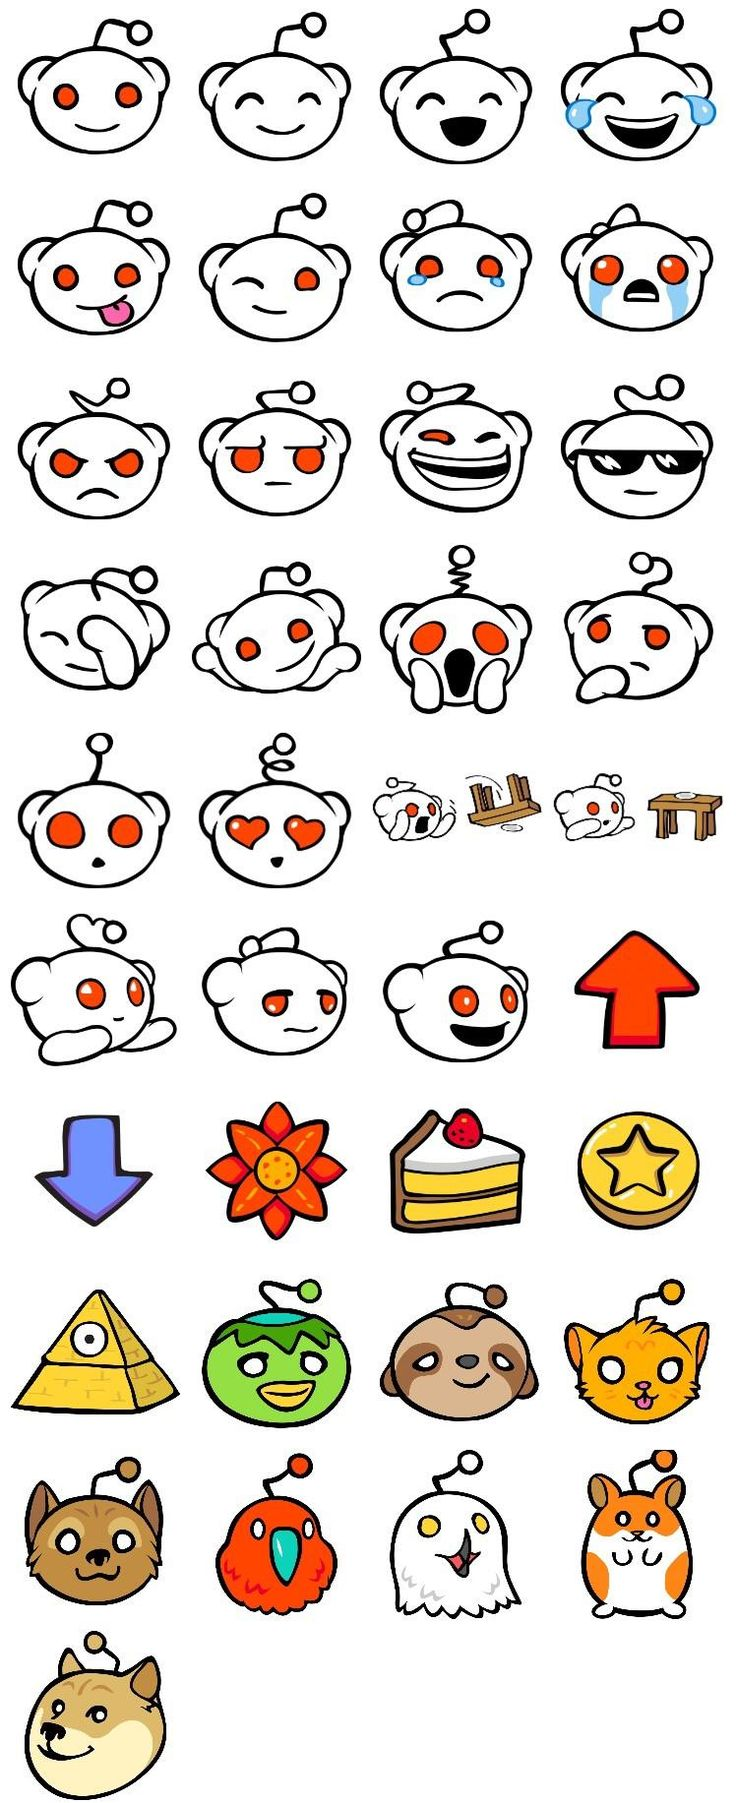 [Request] This are the official Reddit App's iMessage Sticker Pack does a sticker pack for Telegram exist? #Telegram #Stickers #Reddit